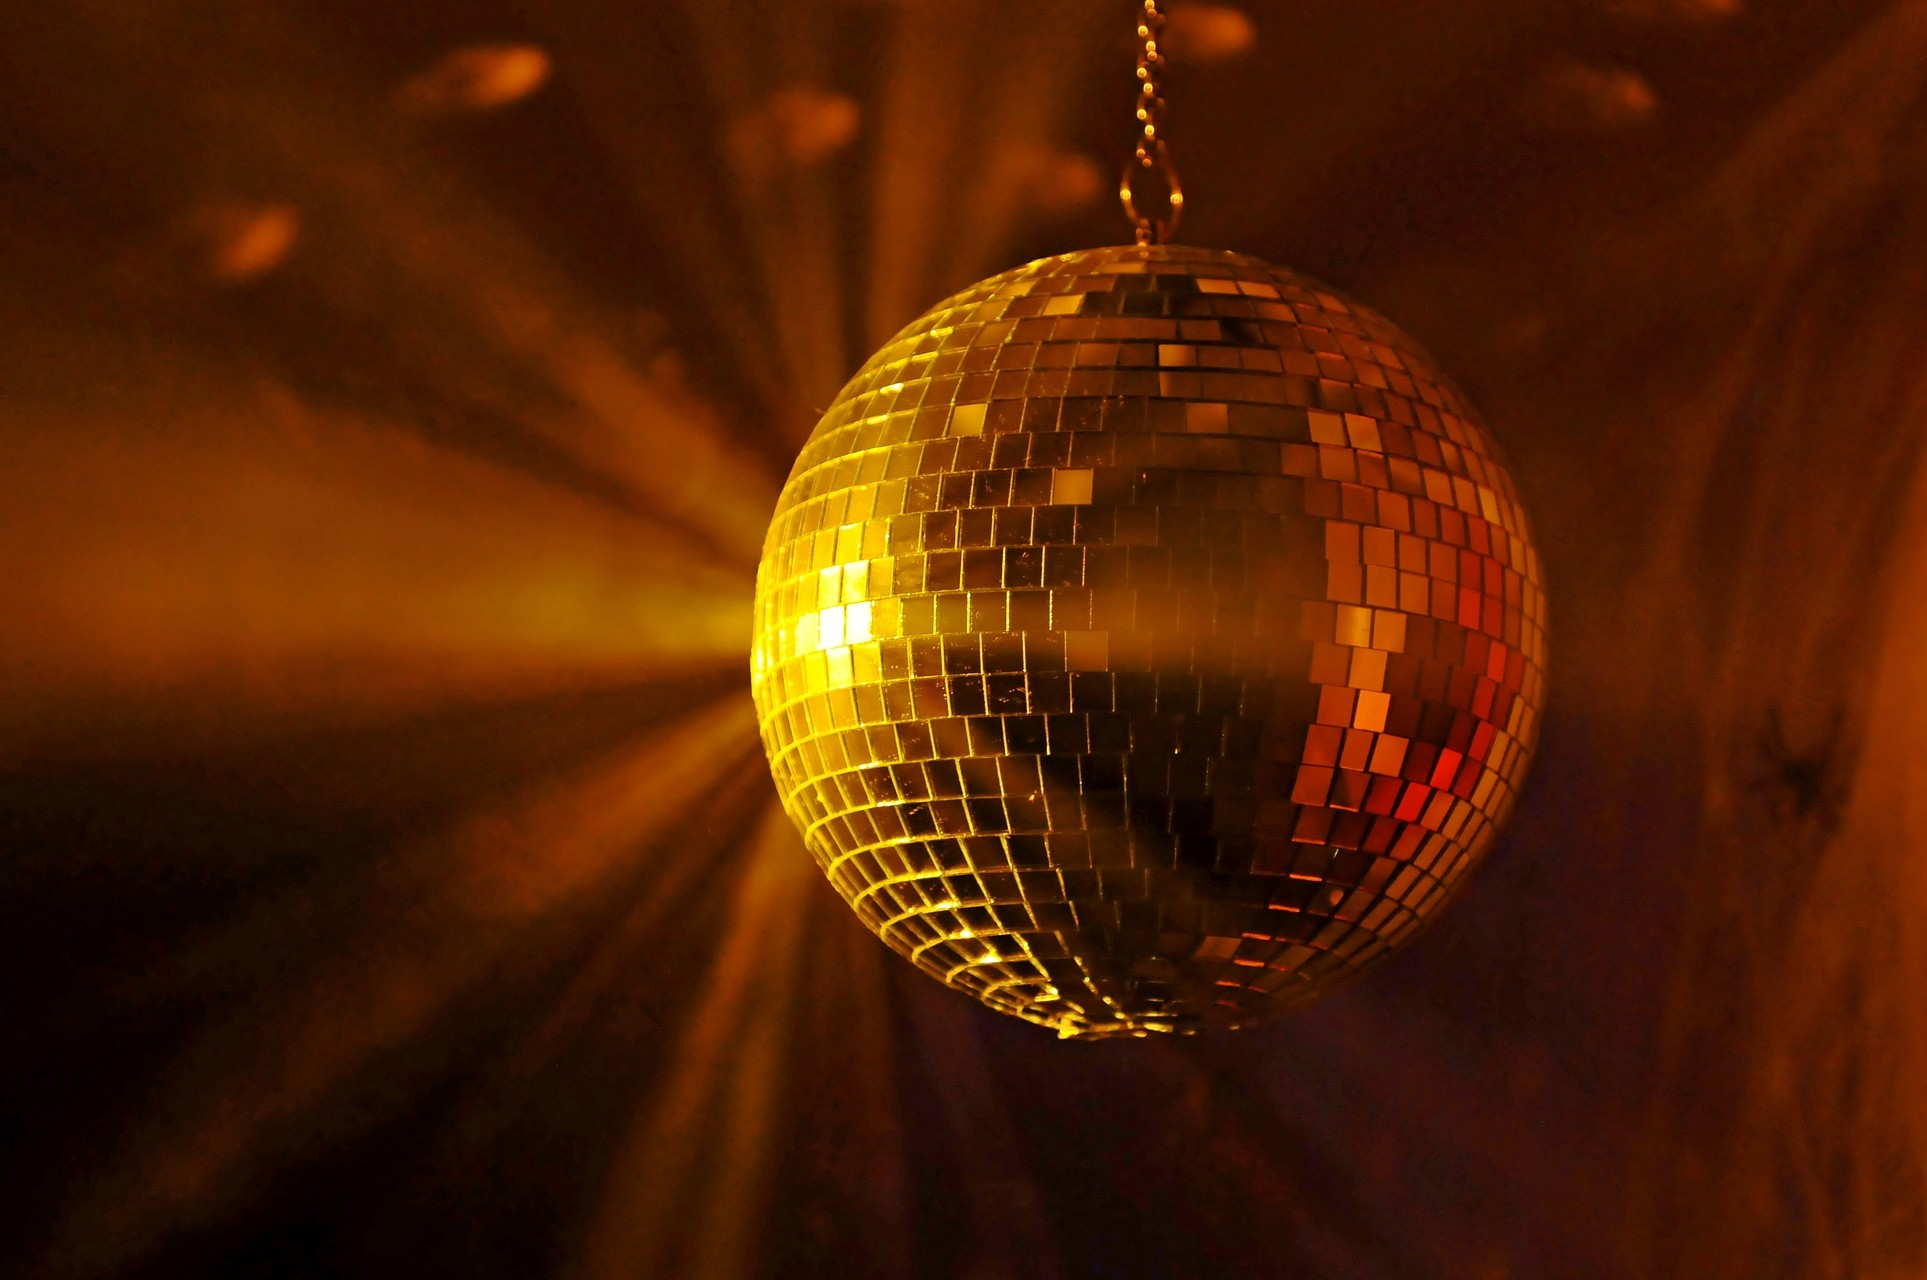 disco hd wallpapers - photo #23